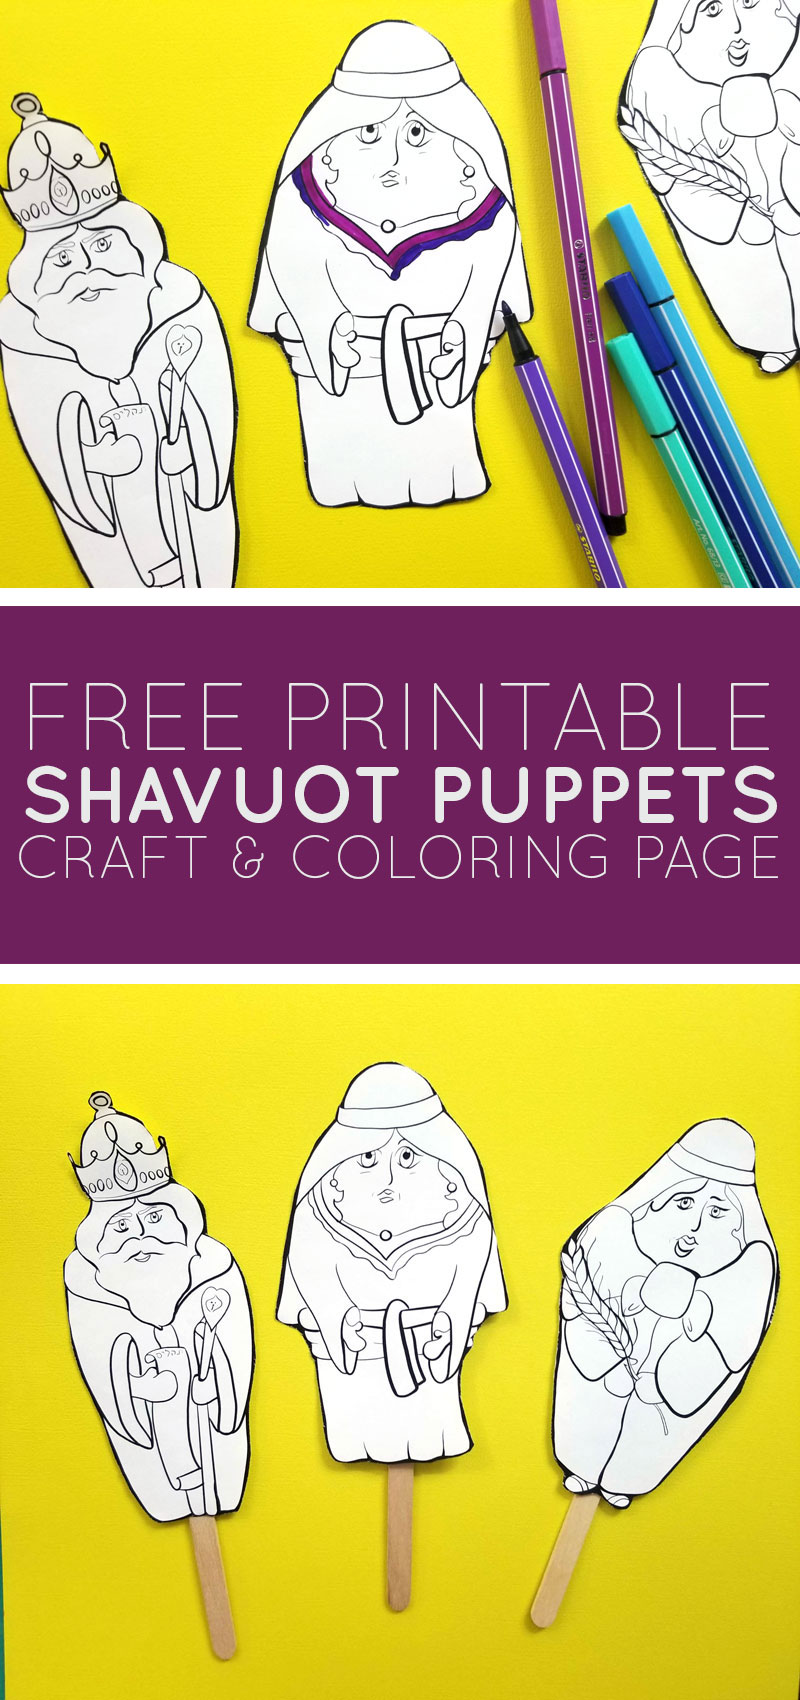 10 FREE Shavuot Coloring Pages & Crafts | 1700x800